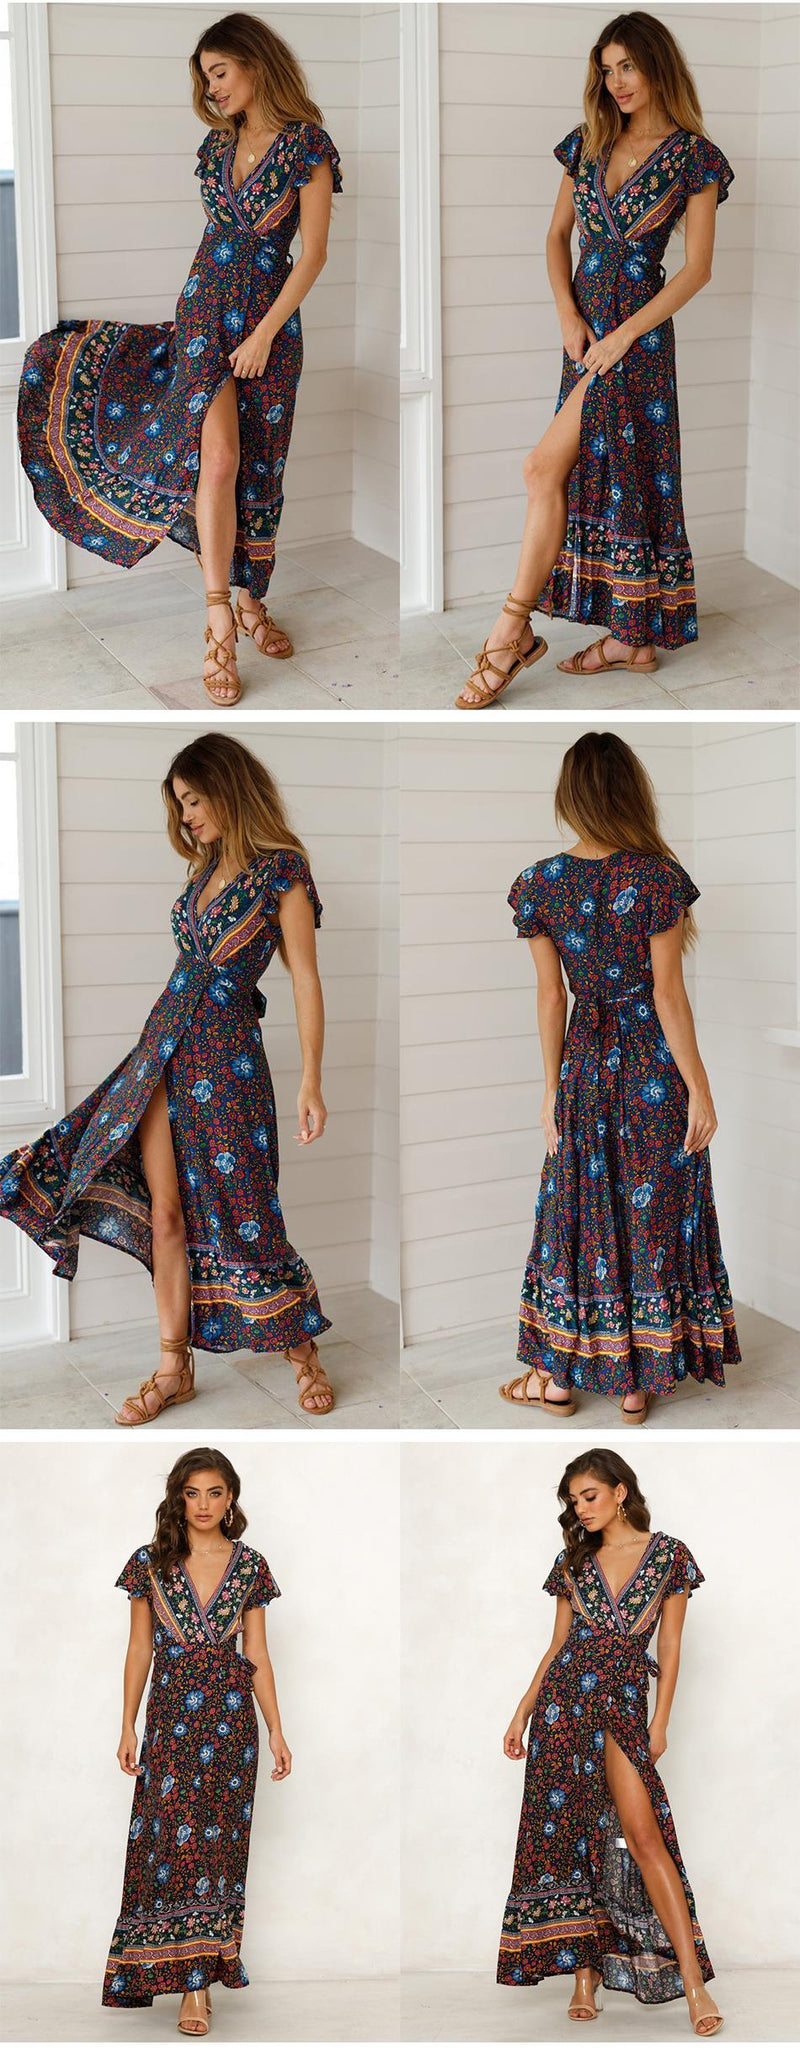 Buy Cheap Lossky Women Summer Boho Beach Dress Casual Holiday Sexy V-neck Floral Long Dresses  Beach Clothes For Women Black Sundress Online - SunLify